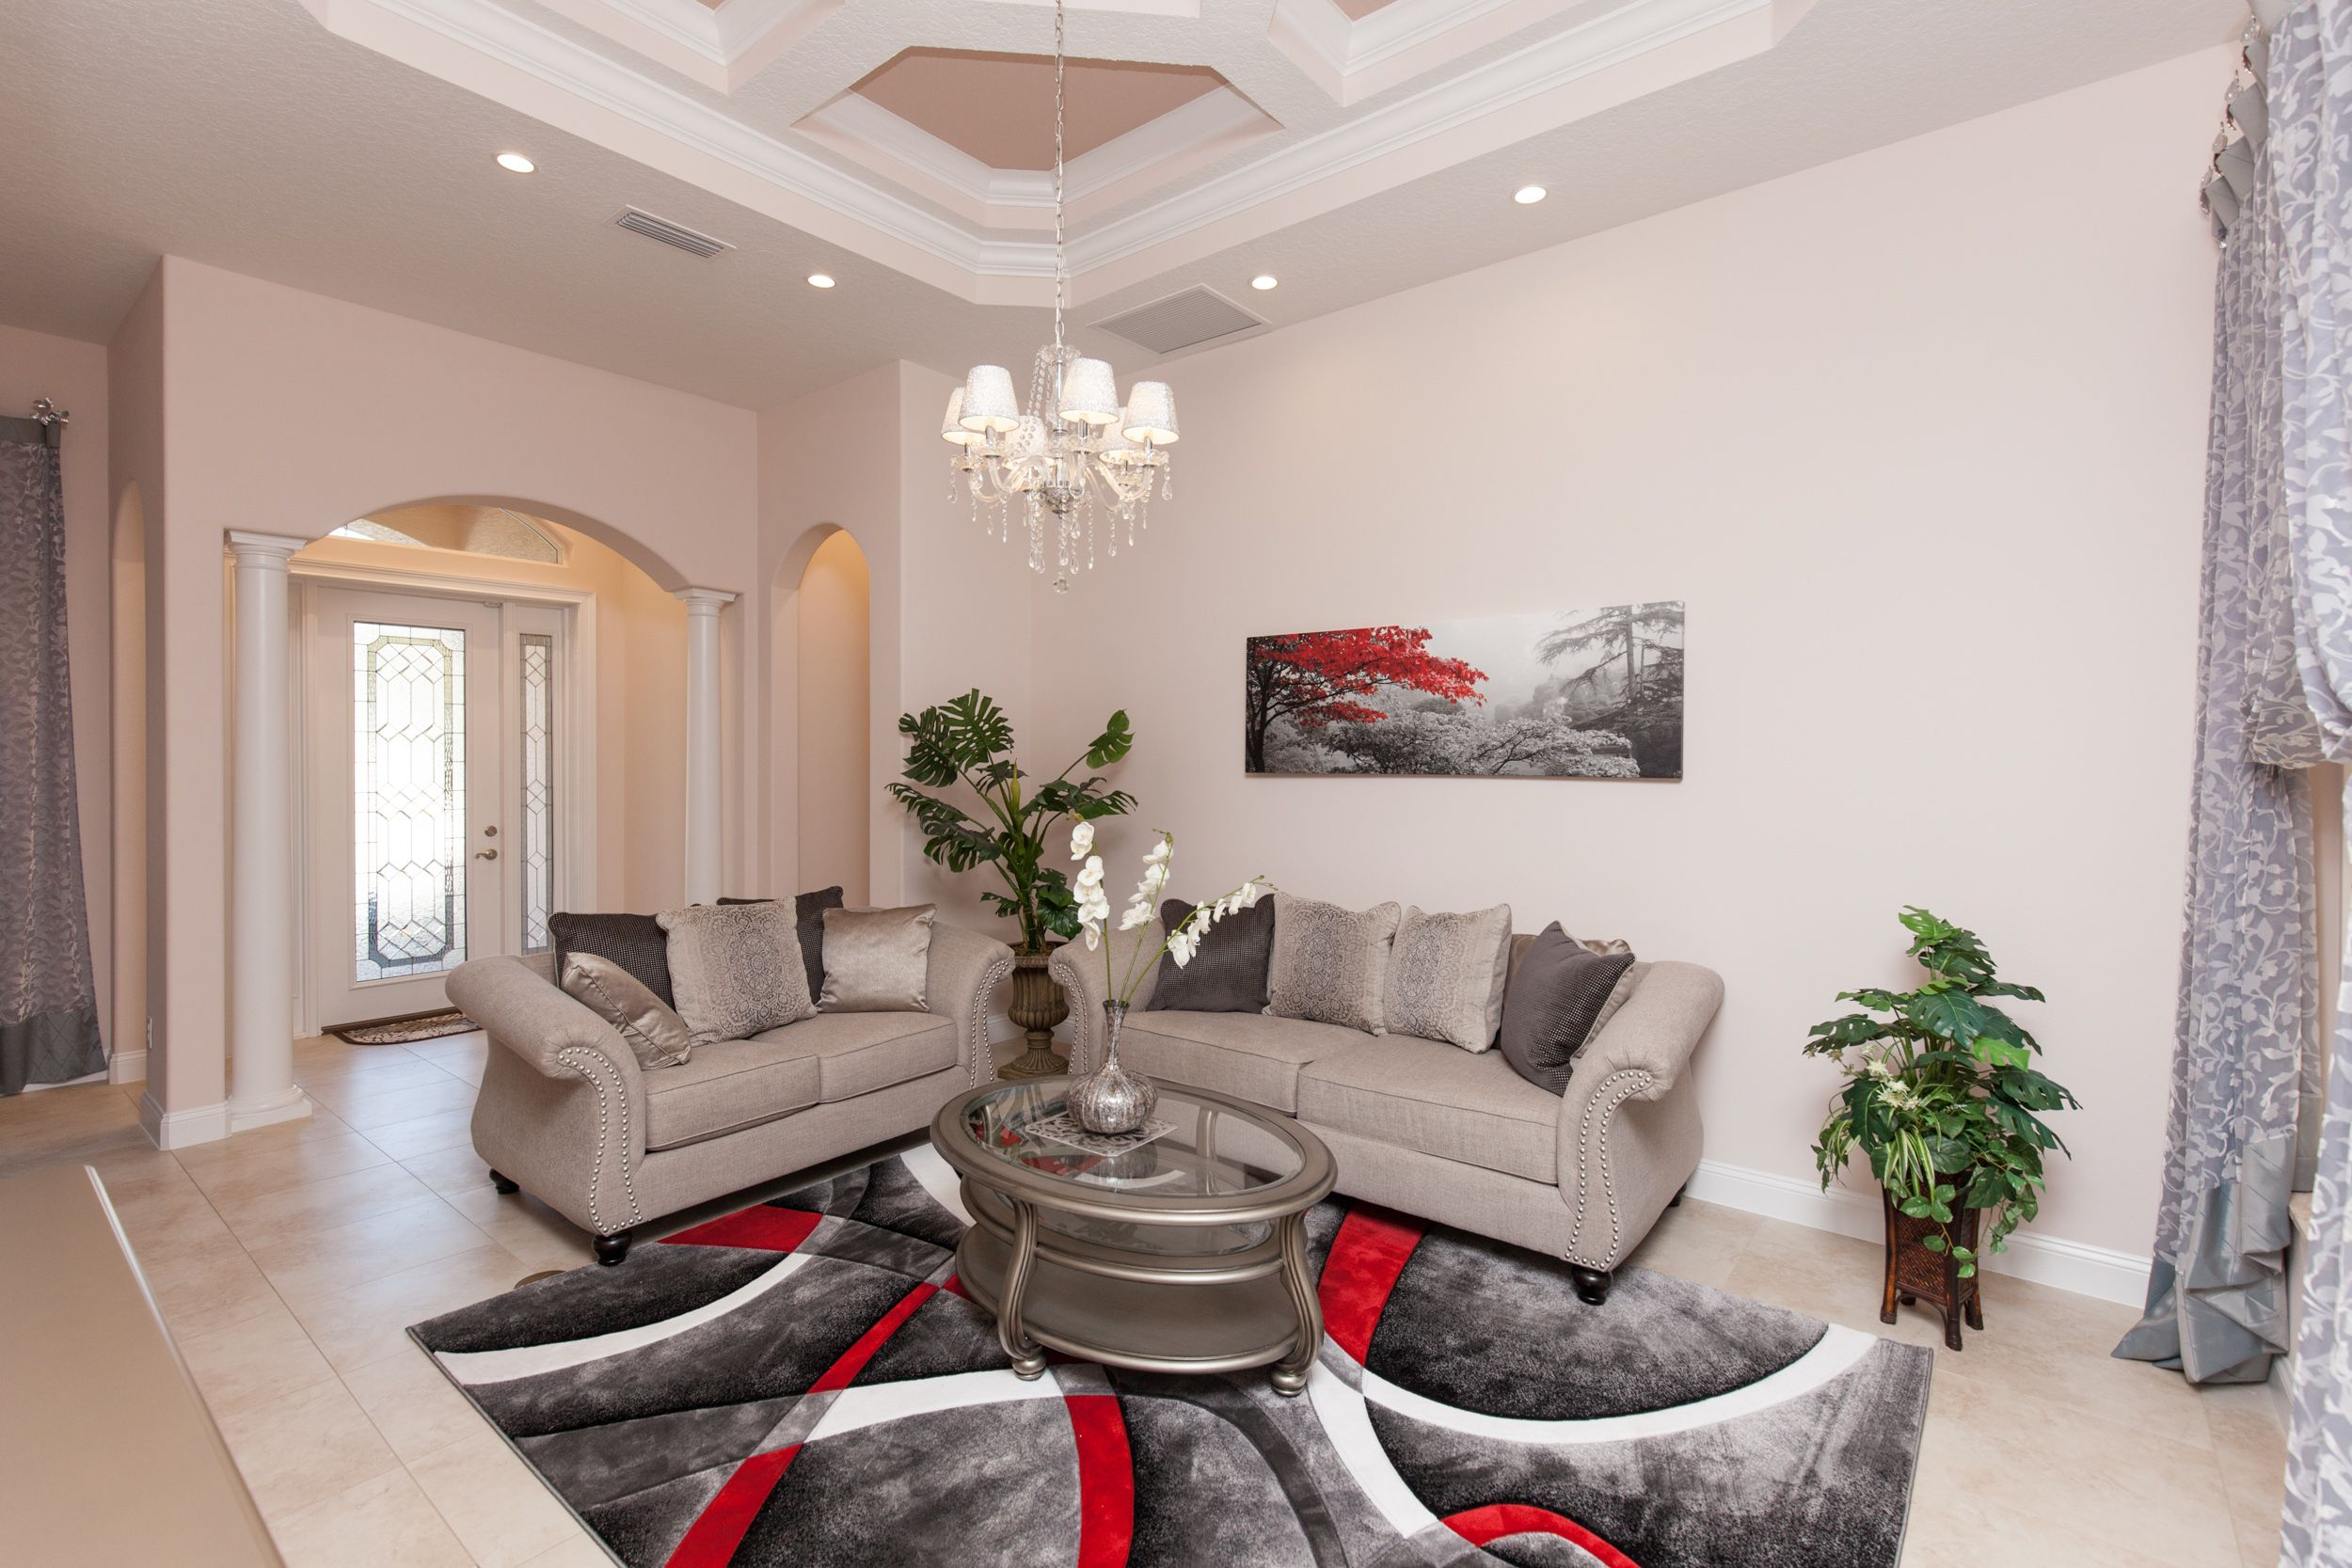 Living Area featured in the ALISA. Certified Green home By Florida Green Construction